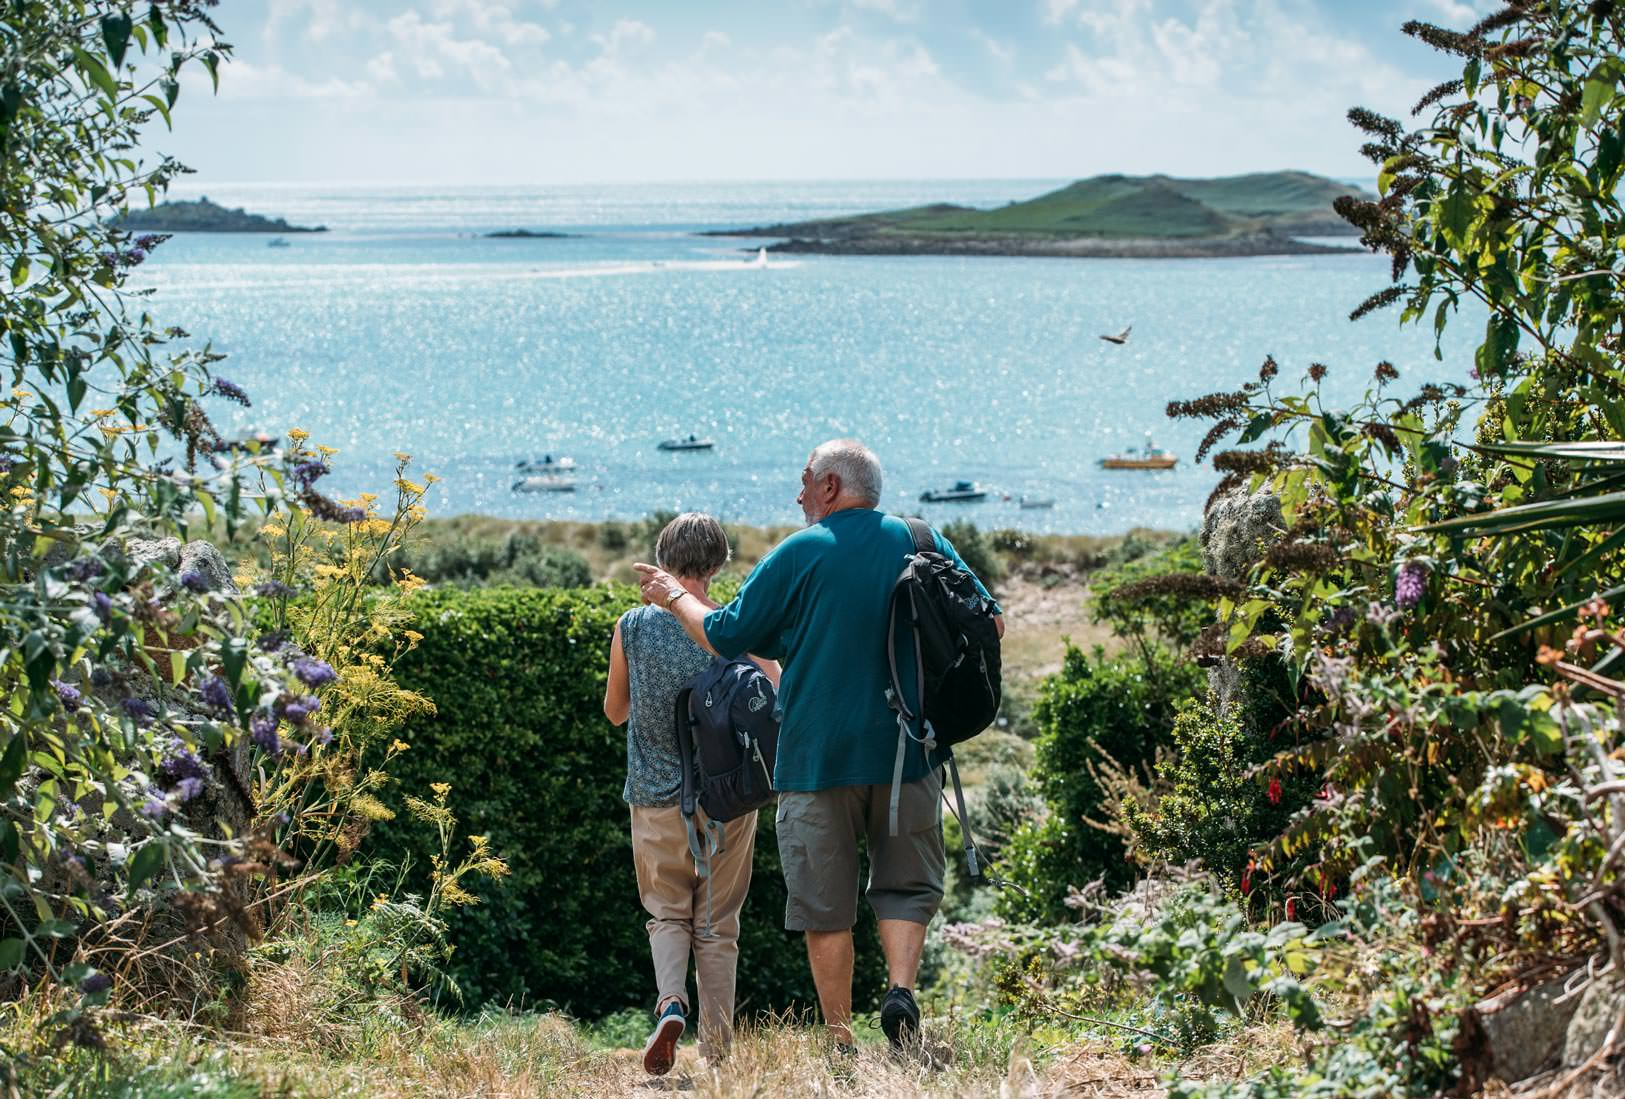 A couple out exploring the Isles of Scilly